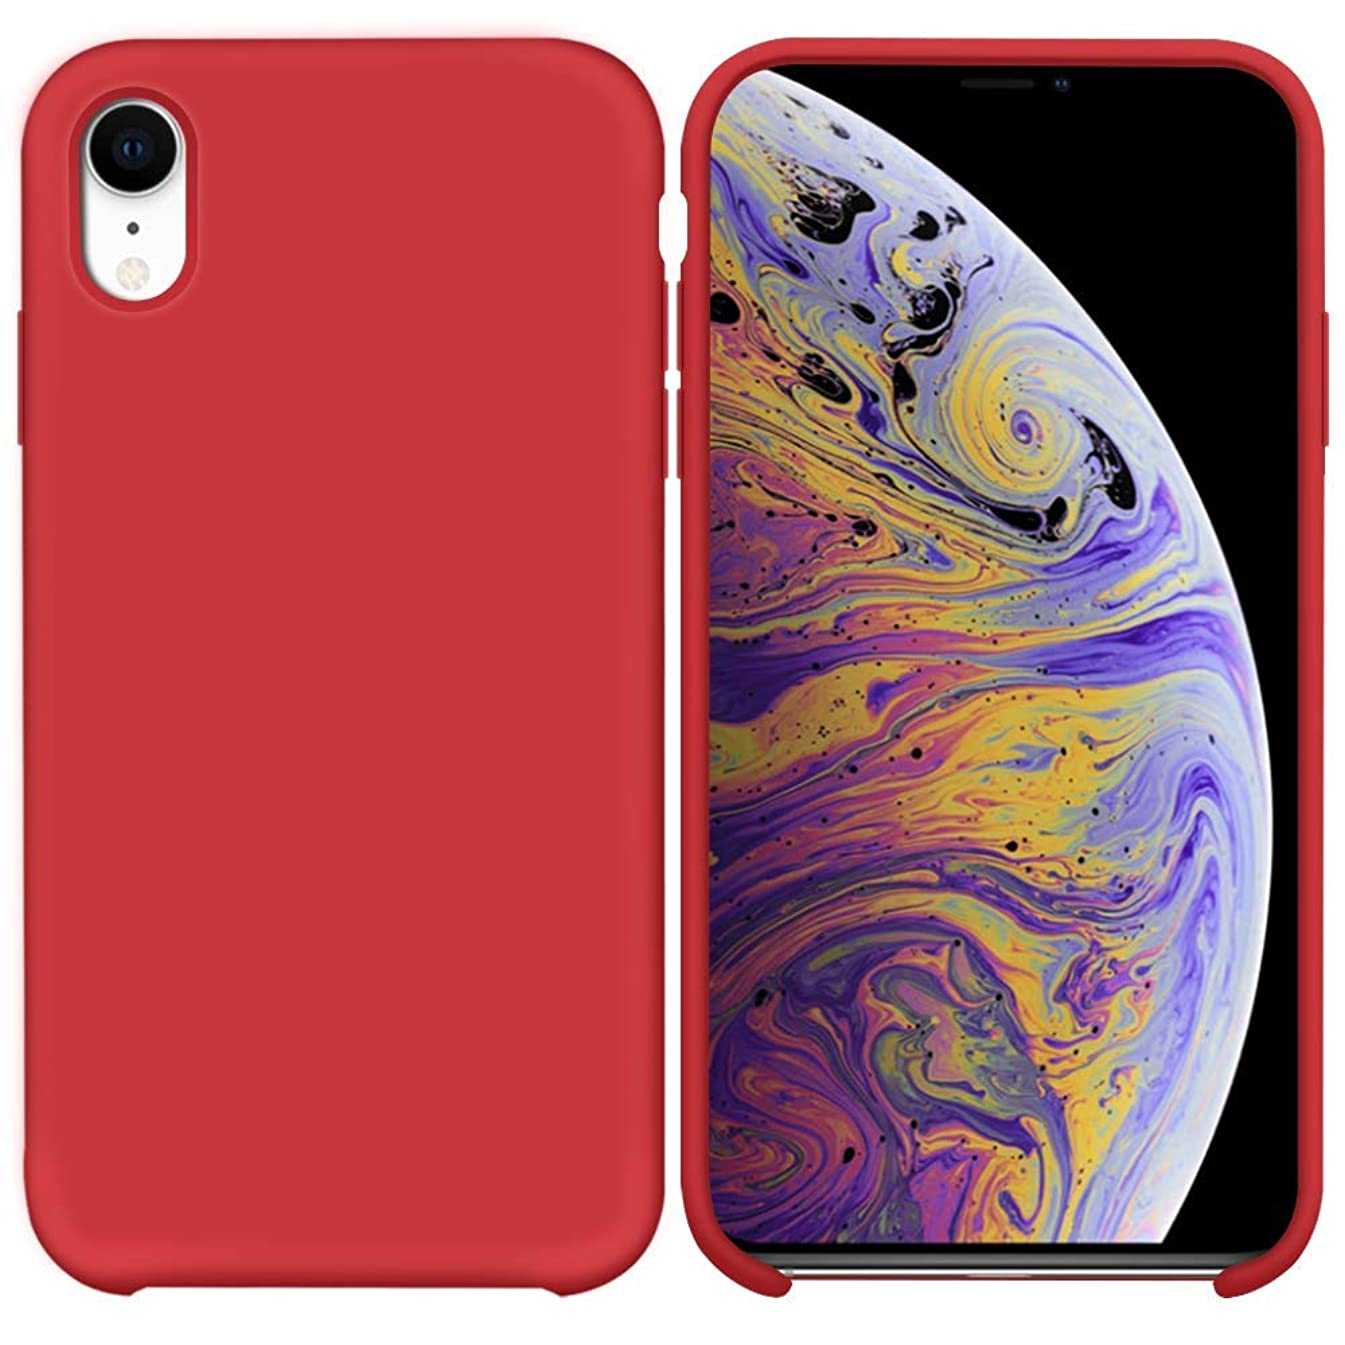 JonElaines iPhone XR Case Anti-Slip Liquid Silicone Gel Rubber Bumper Case with Soft Microfiber Lining Cushion Slim Hard Shell Shockproof Protective Case Cover Apple iPhone XR 6.1